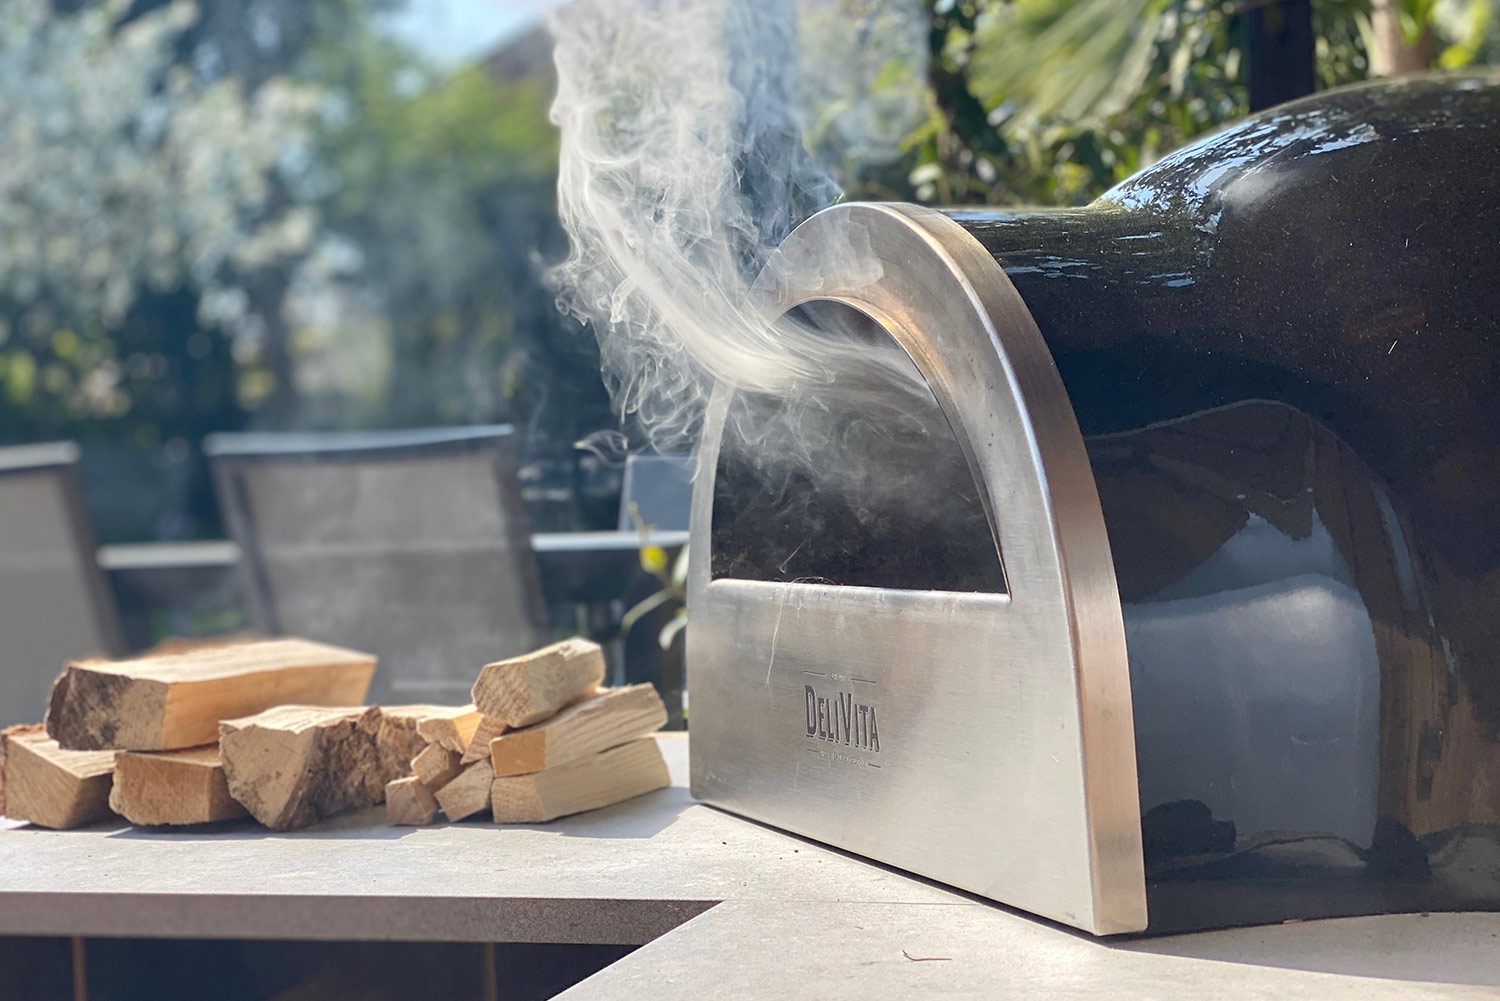 outdoor kitchens with pizza ovens close up of a smoking Delivita pizza oven